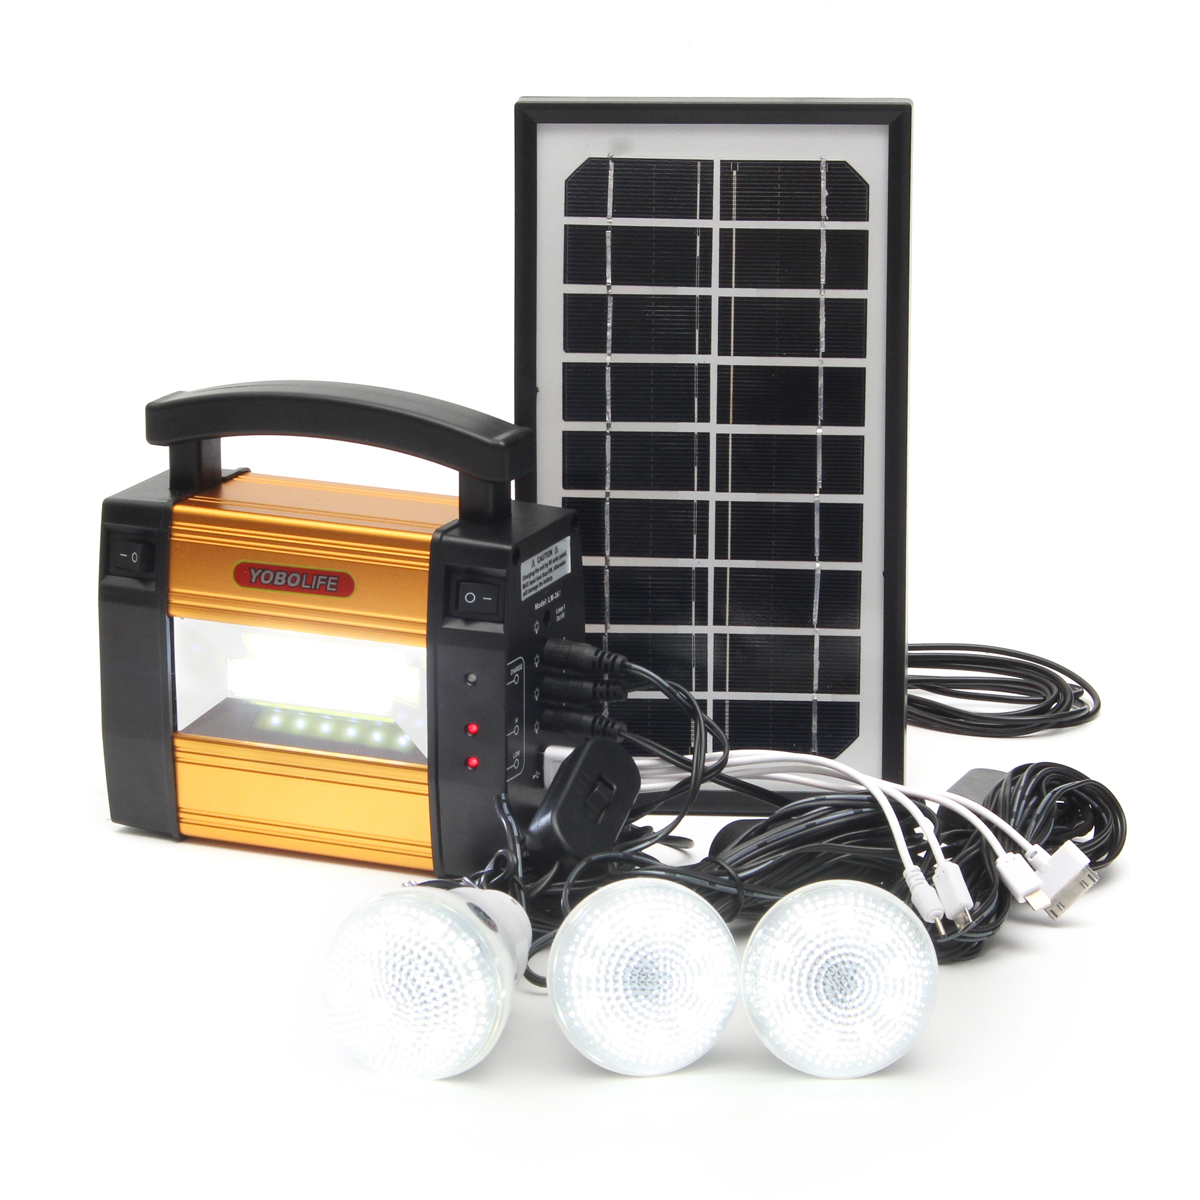 LM-367 110- 240V Solar Power Panel Generator Solar Powered System 3 LED Lamps Generator